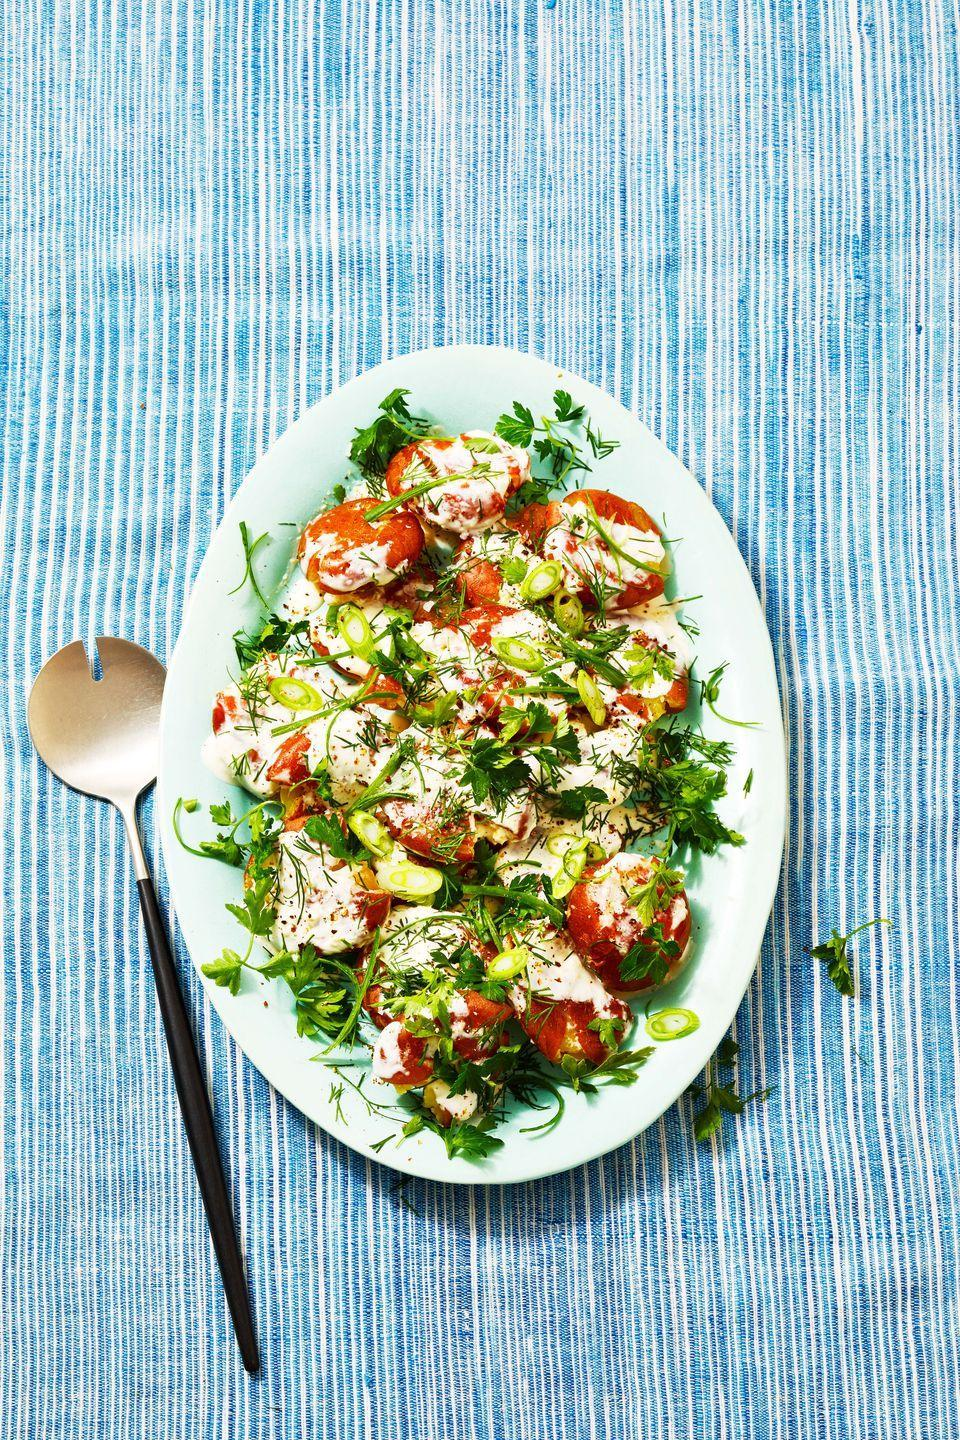 """<p>Bring this dreamy, creamy red potato salad to your next picnic and it might just outshine the main <a href=""""https://www.goodhousekeeping.com/food-recipes/g413/great-grilling-recipes/"""" rel=""""nofollow noopener"""" target=""""_blank"""" data-ylk=""""slk:grilling recipes"""" class=""""link rapid-noclick-resp"""">grilling recipes</a> on the table.</p><p><em><a href=""""https://www.goodhousekeeping.com/food-recipes/a36701641/red-potato-salad-recipe/"""" rel=""""nofollow noopener"""" target=""""_blank"""" data-ylk=""""slk:Get the recipe for Herby Red Potato Salad »"""" class=""""link rapid-noclick-resp"""">Get the recipe for Herby Red Potato Salad »</a></em></p>"""